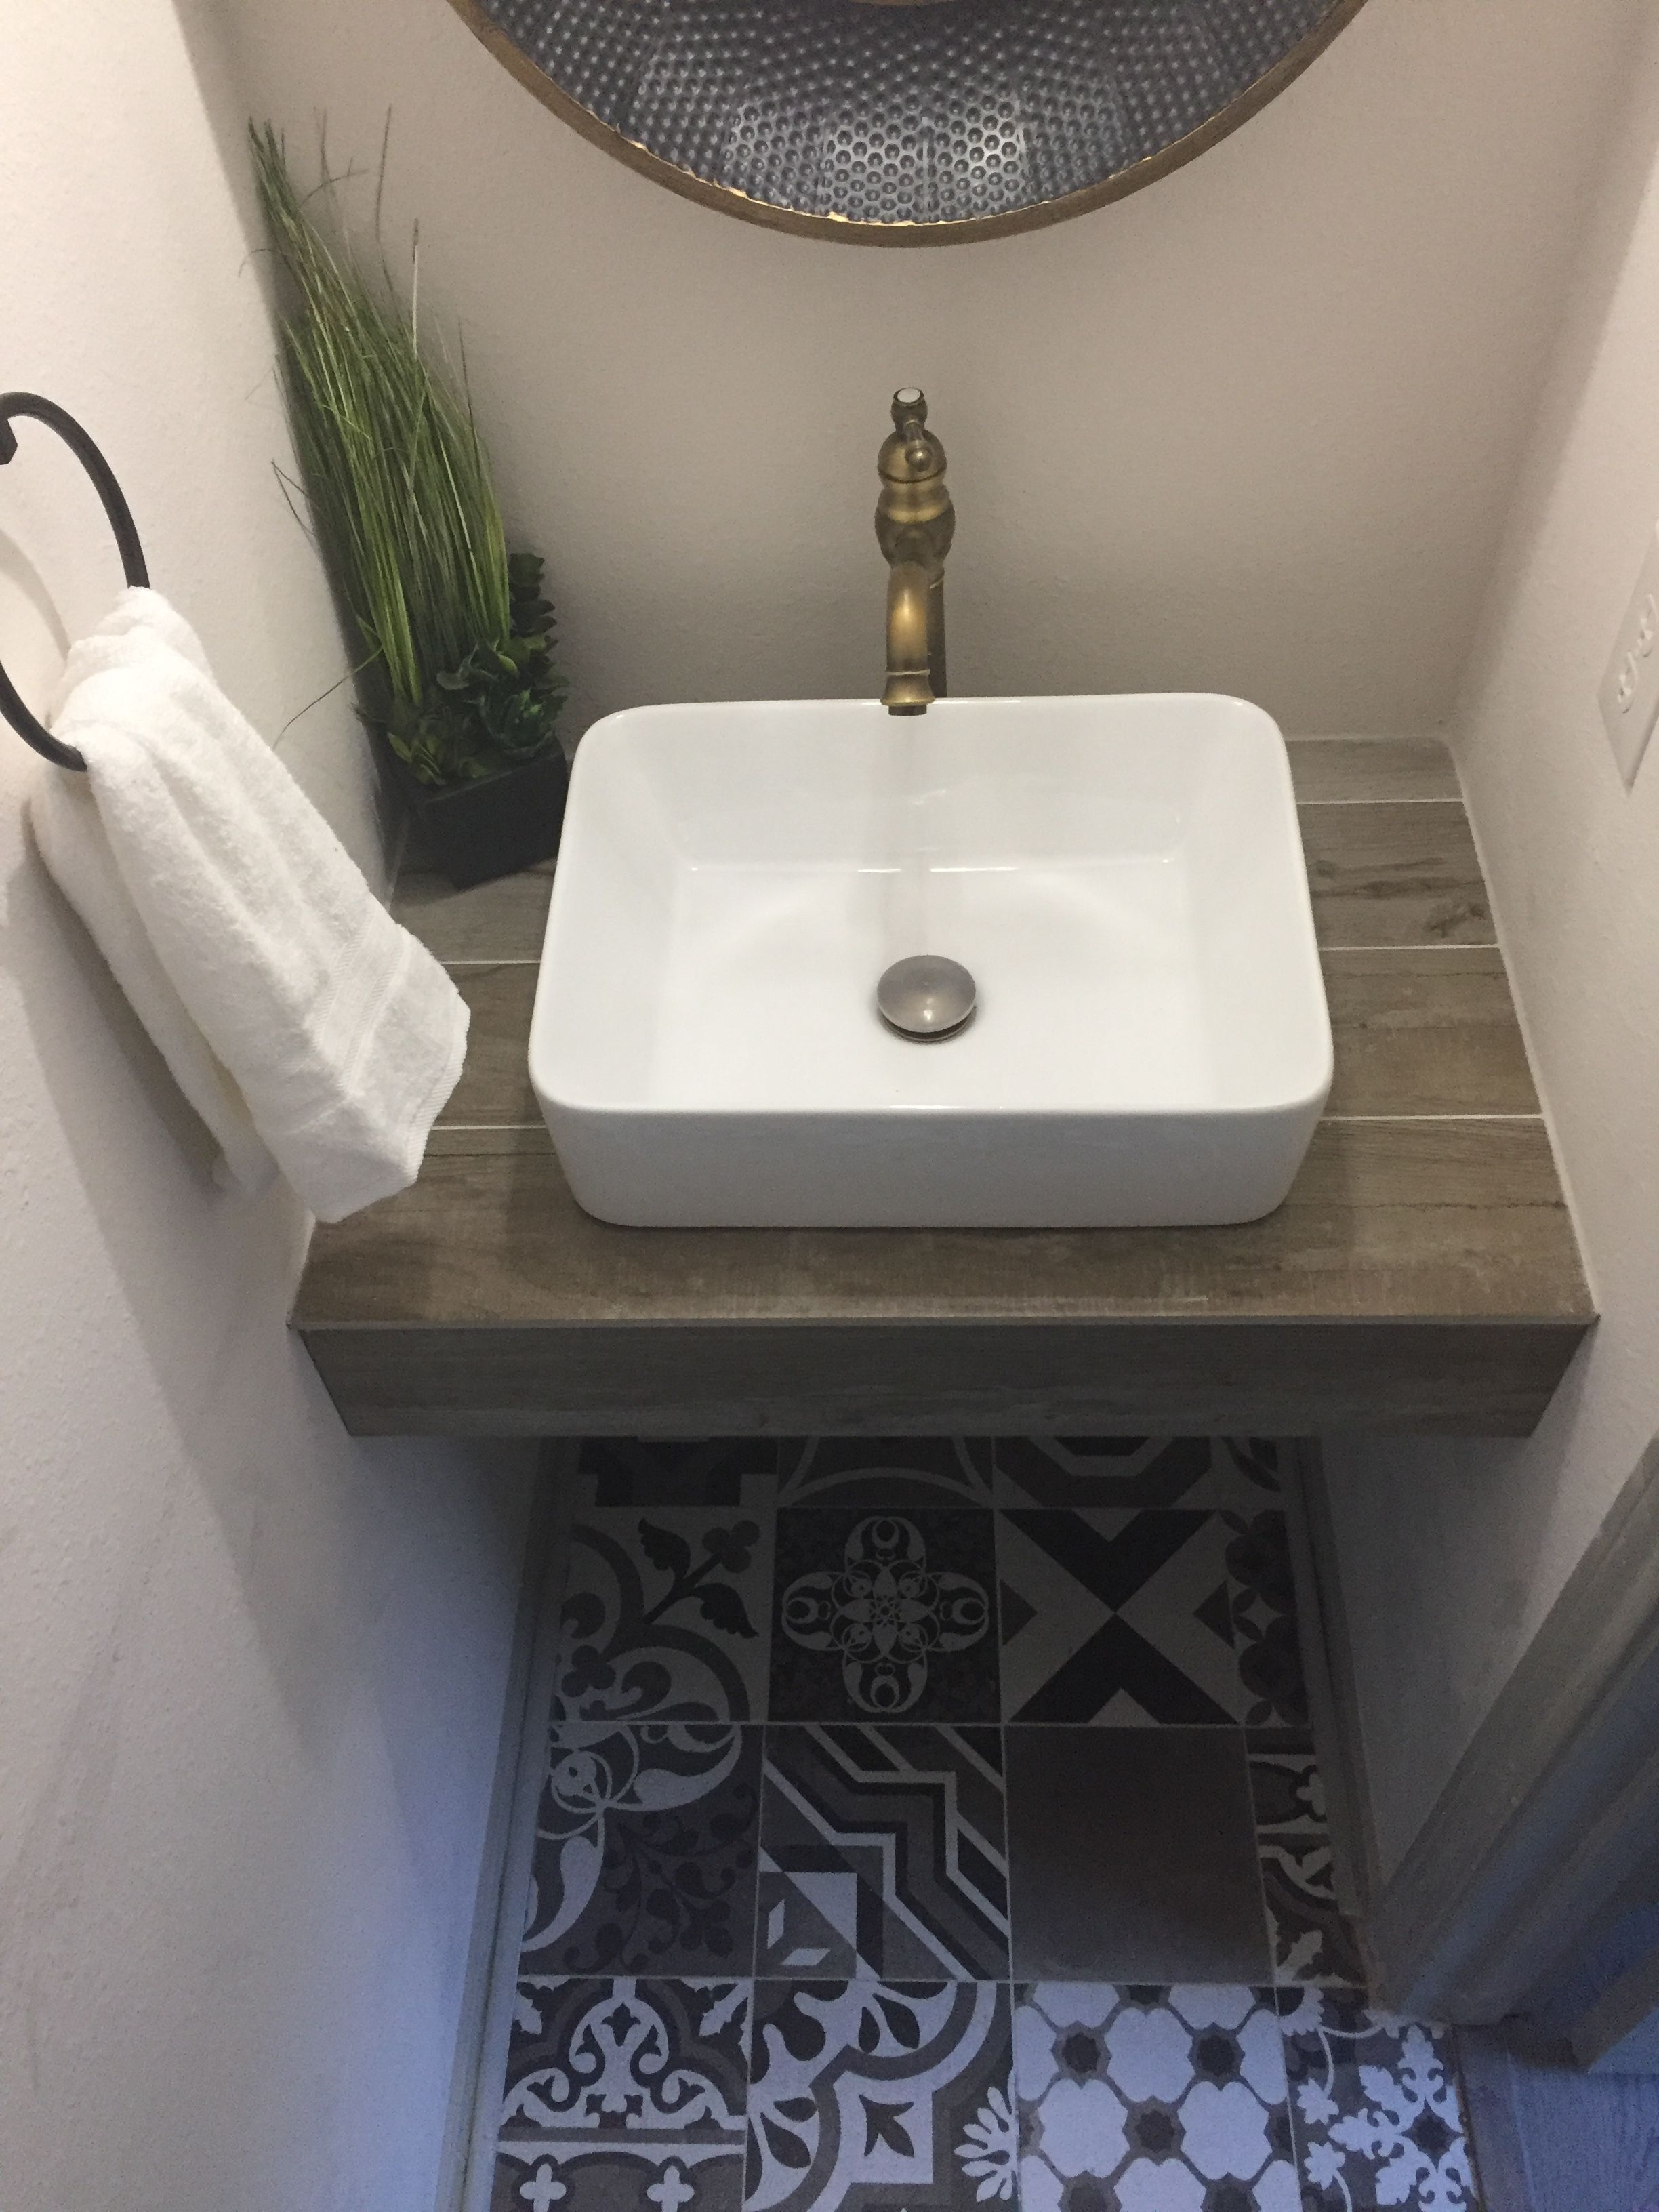 half bathroom remodel new floor tile floating shelf with vessel basin sink faucet doesn look like otherwise ordinary builders grade anymore target black wall shelves corner glass